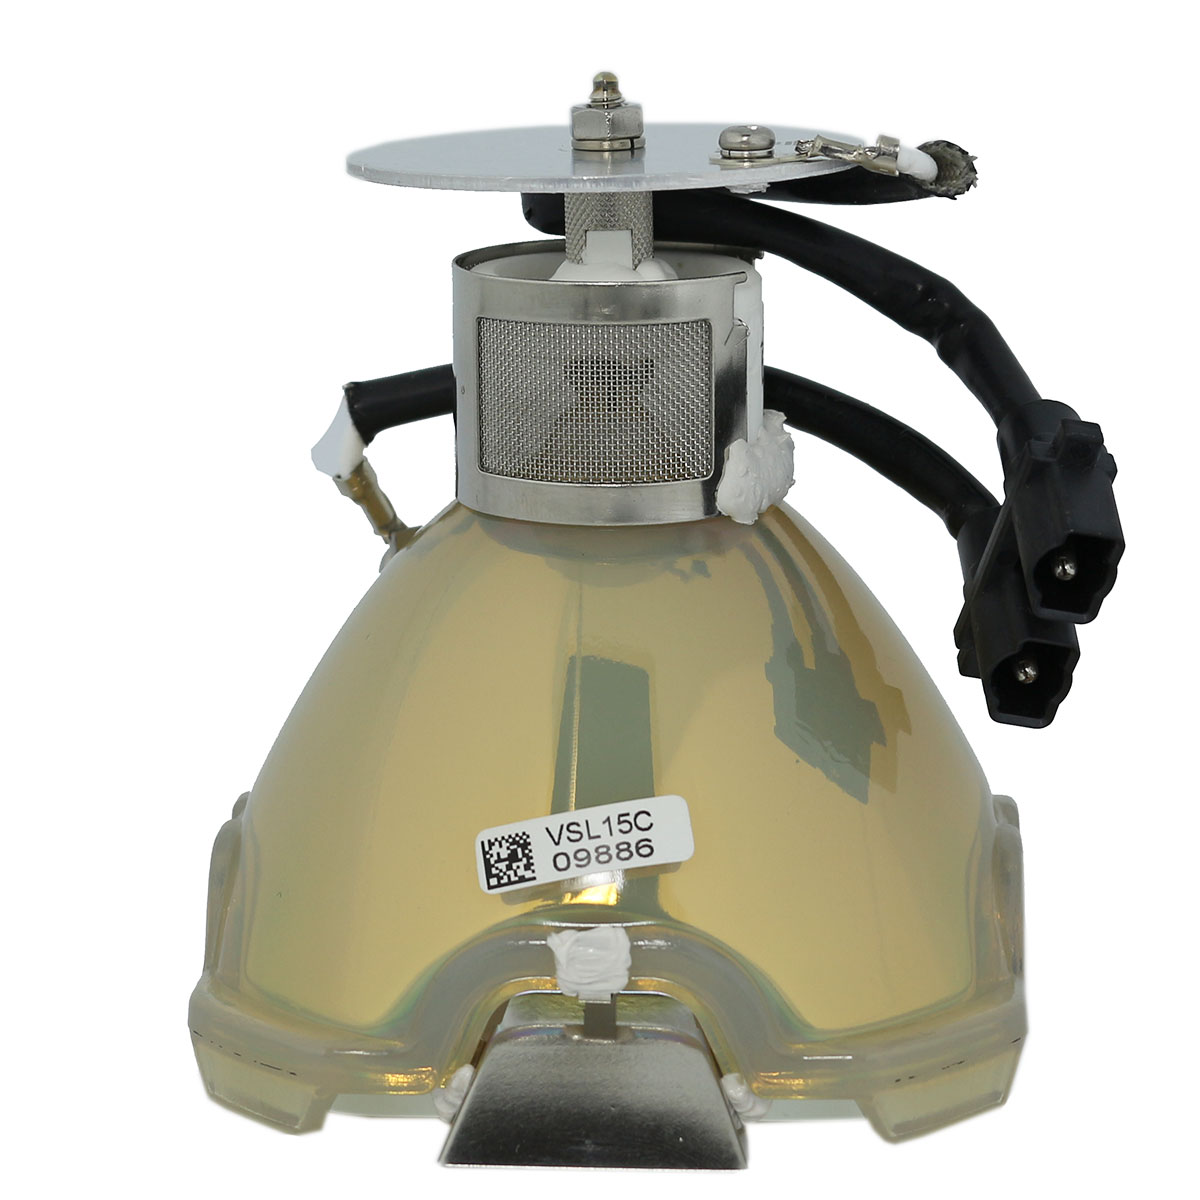 Genuine OEM Replacement Lamp for Sharp DT5000 Projector Power by Phoenix IET Lamps with 1 Year Warranty